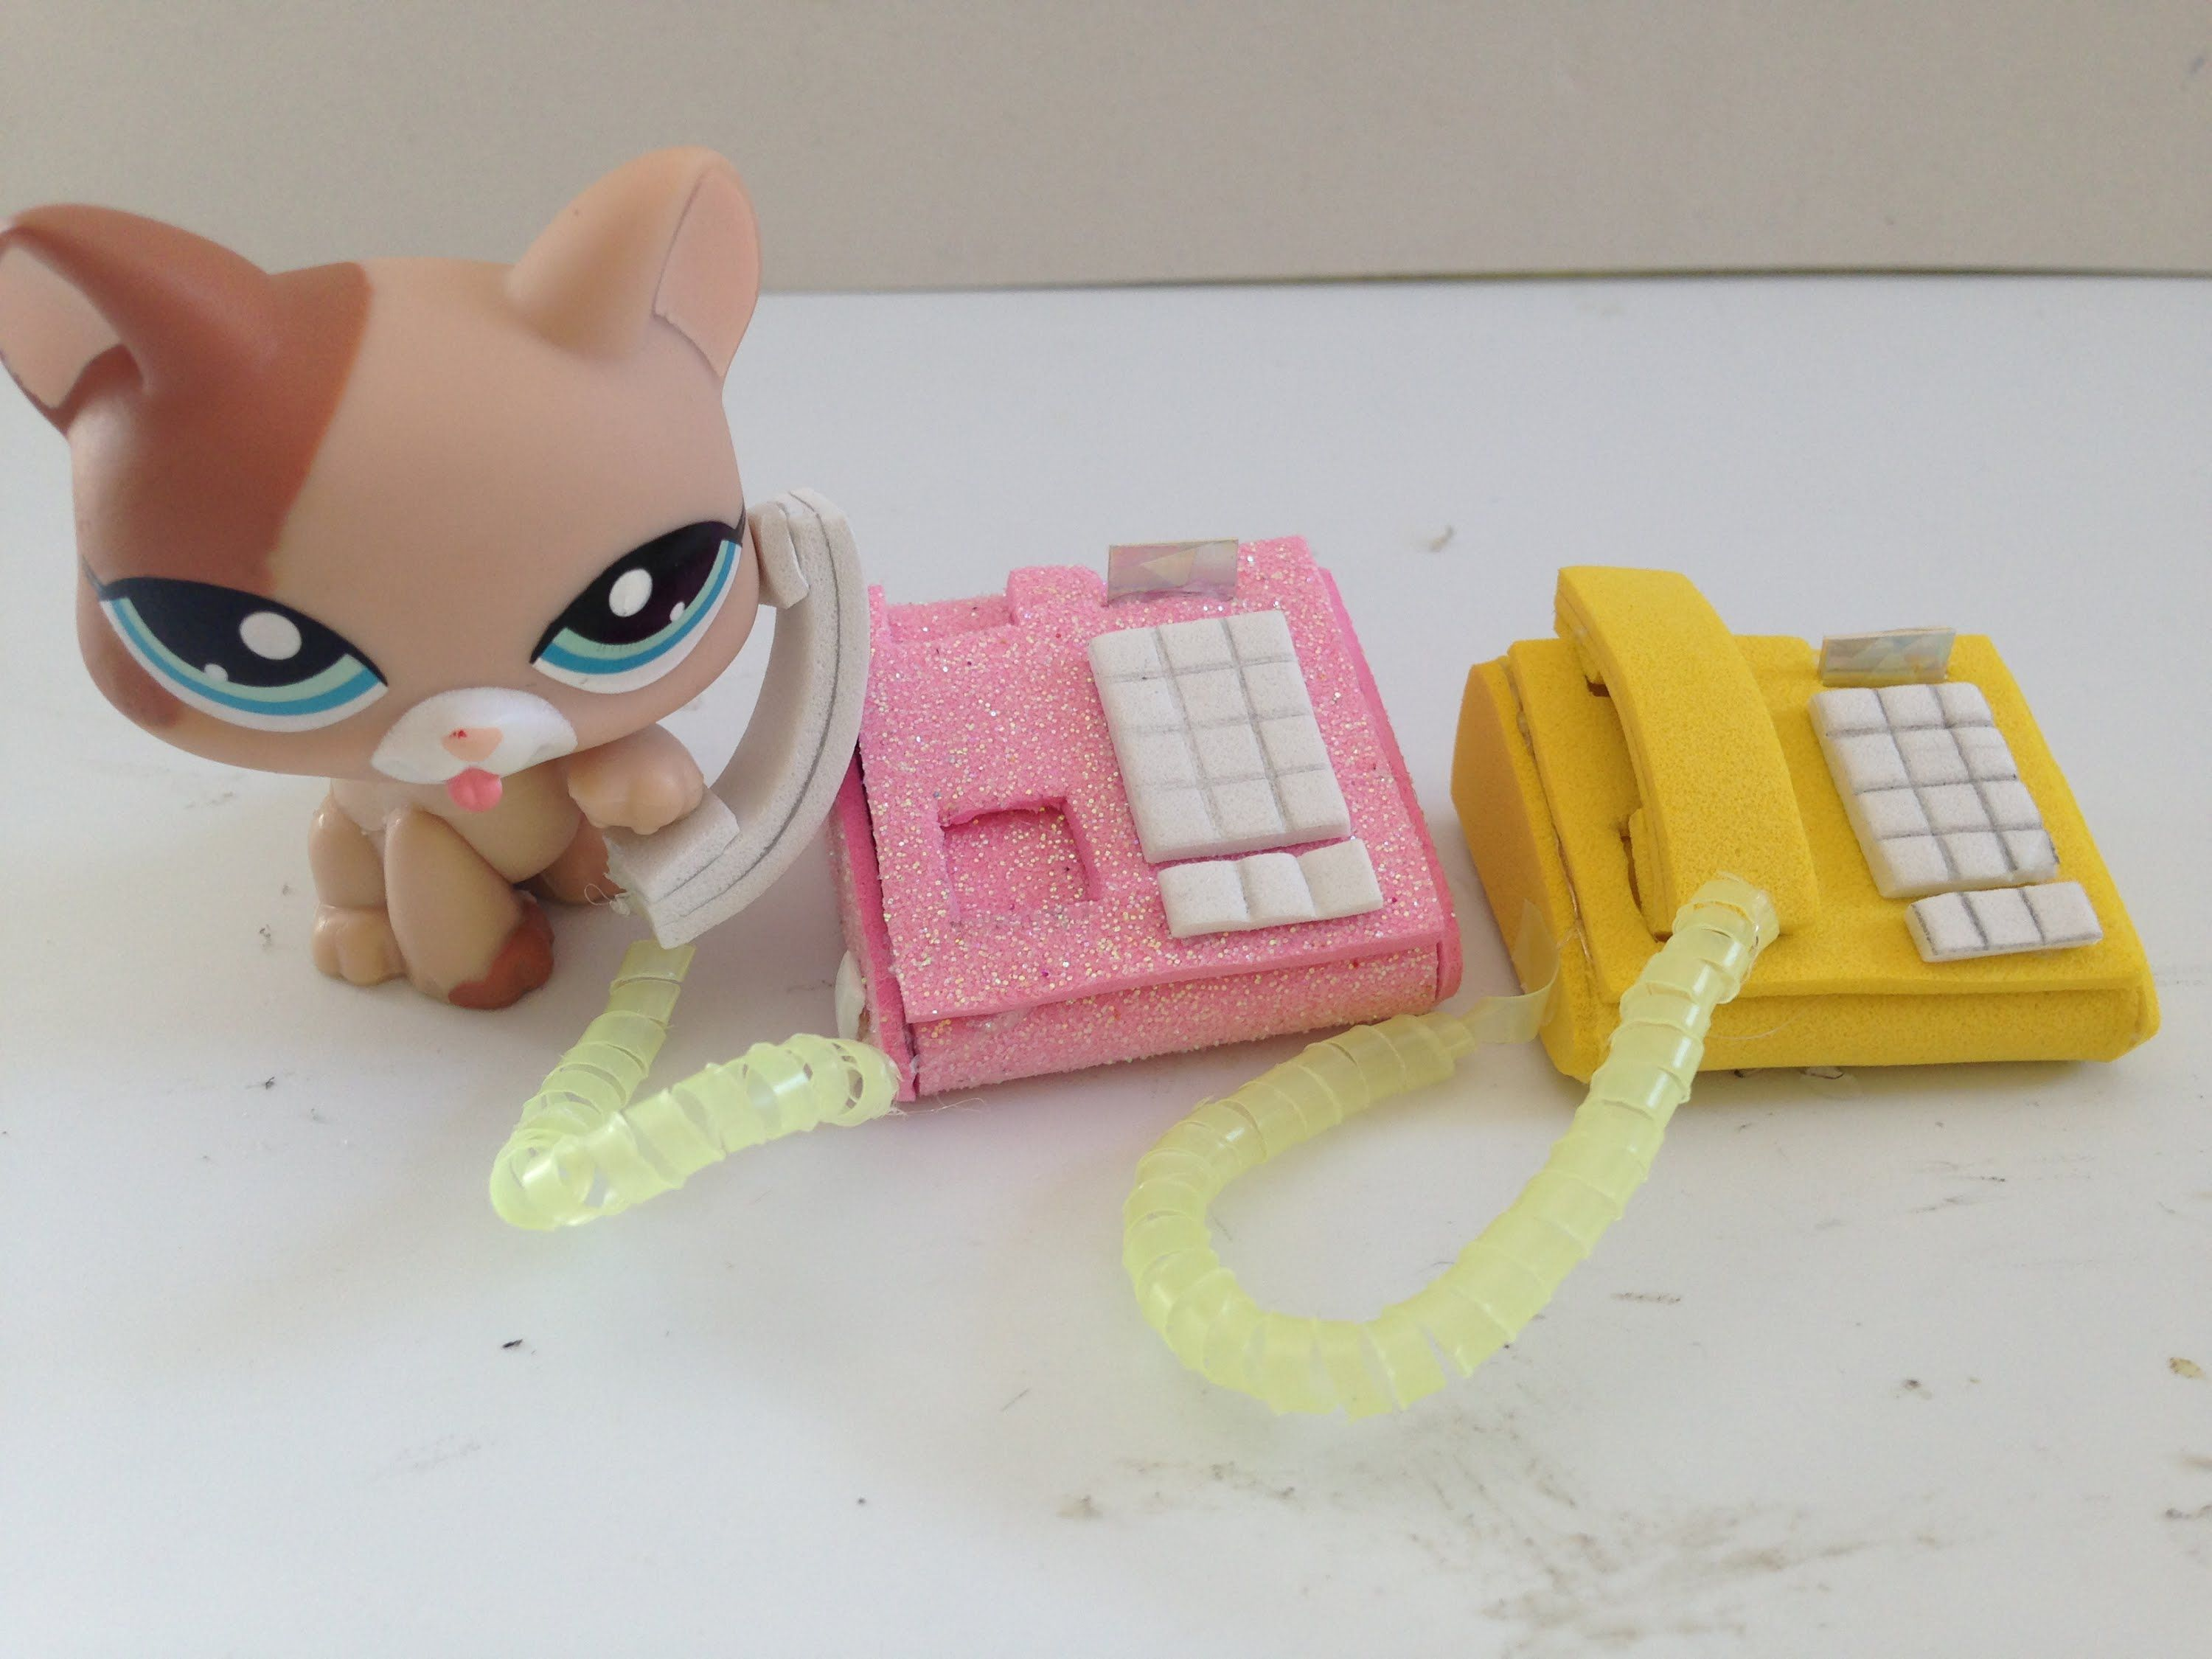 How To Make A Lps Doll Phone Lps Accessories Lps Accessories Lps Diy Accessories Lps Crafts